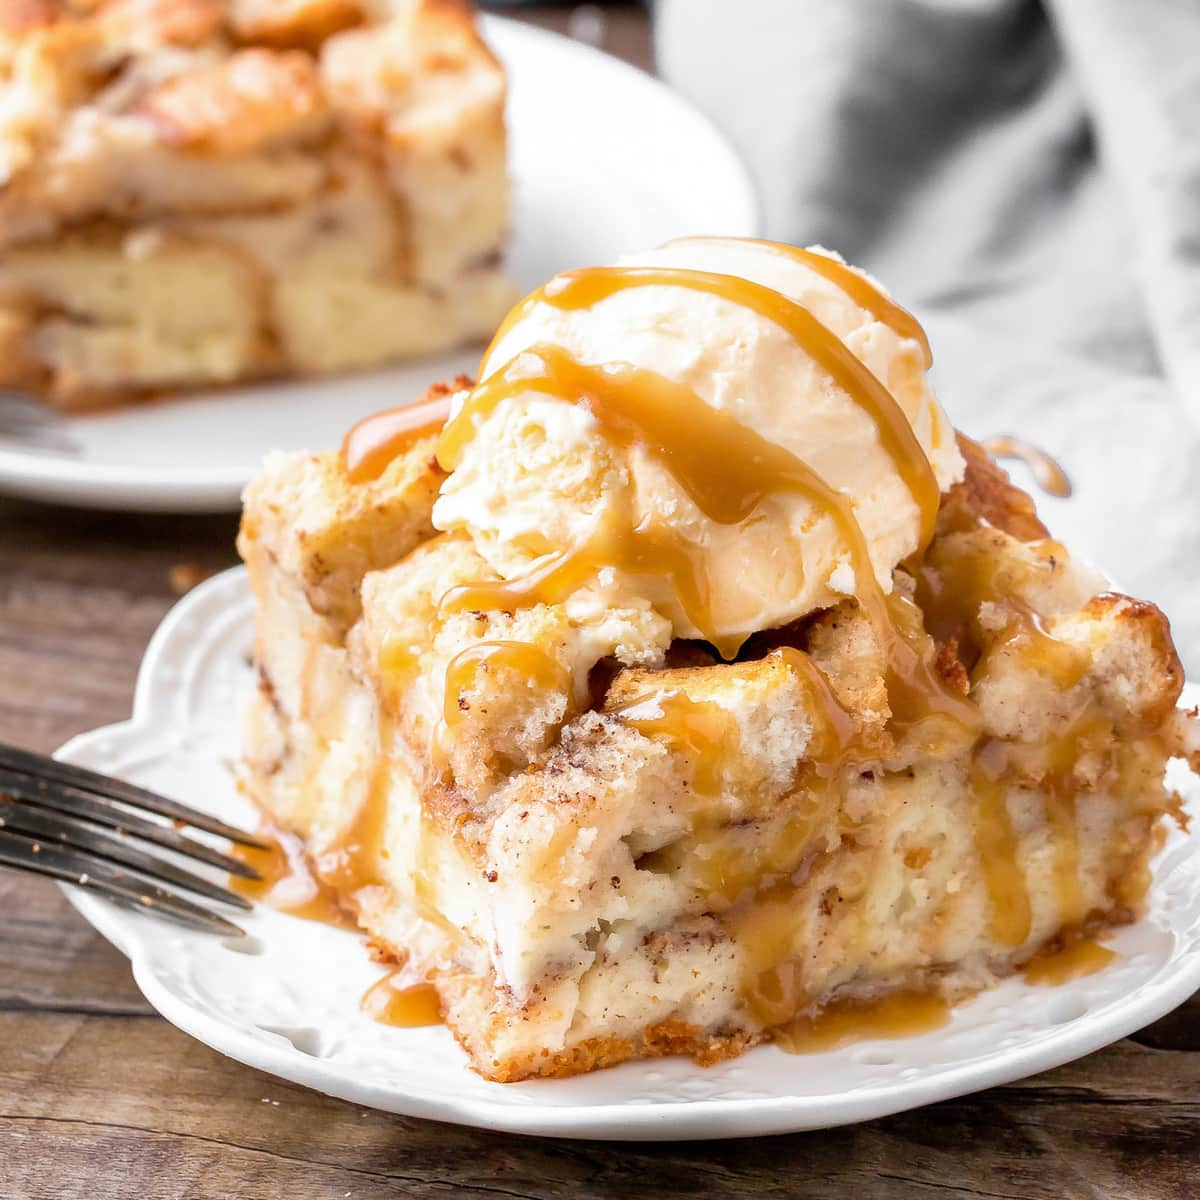 Bread pudding with caramel sauce on plate